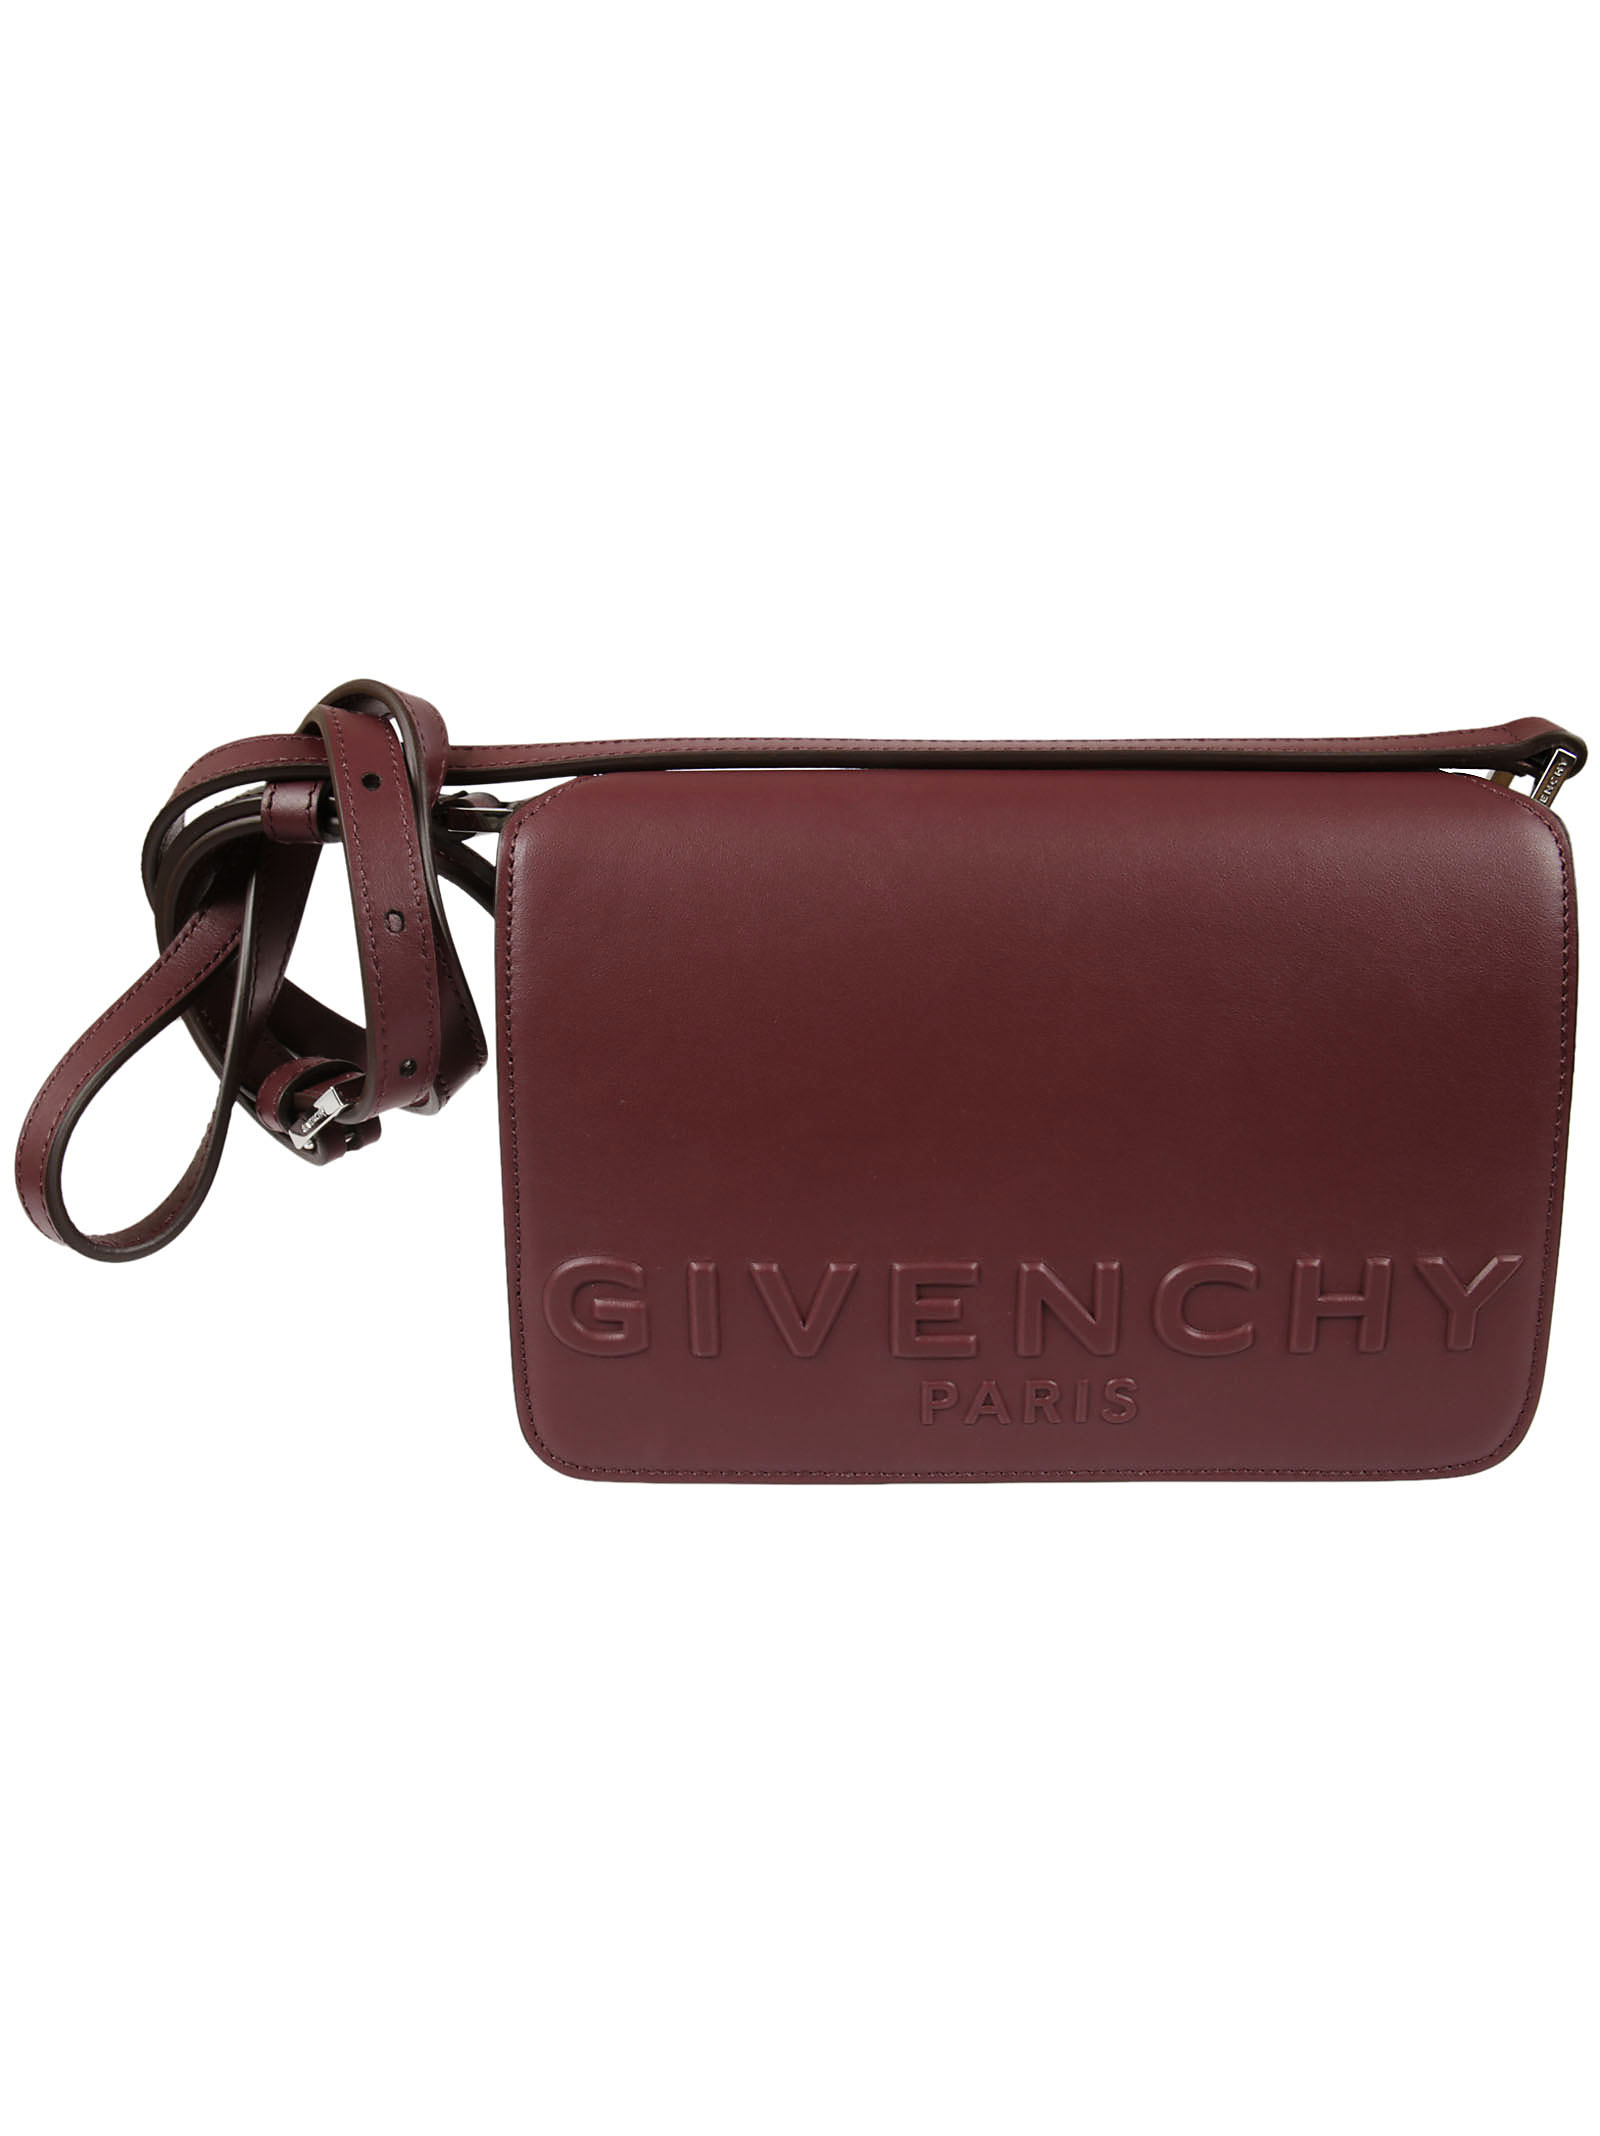 Givenchy Givenchy Debossed Shoulder Bag